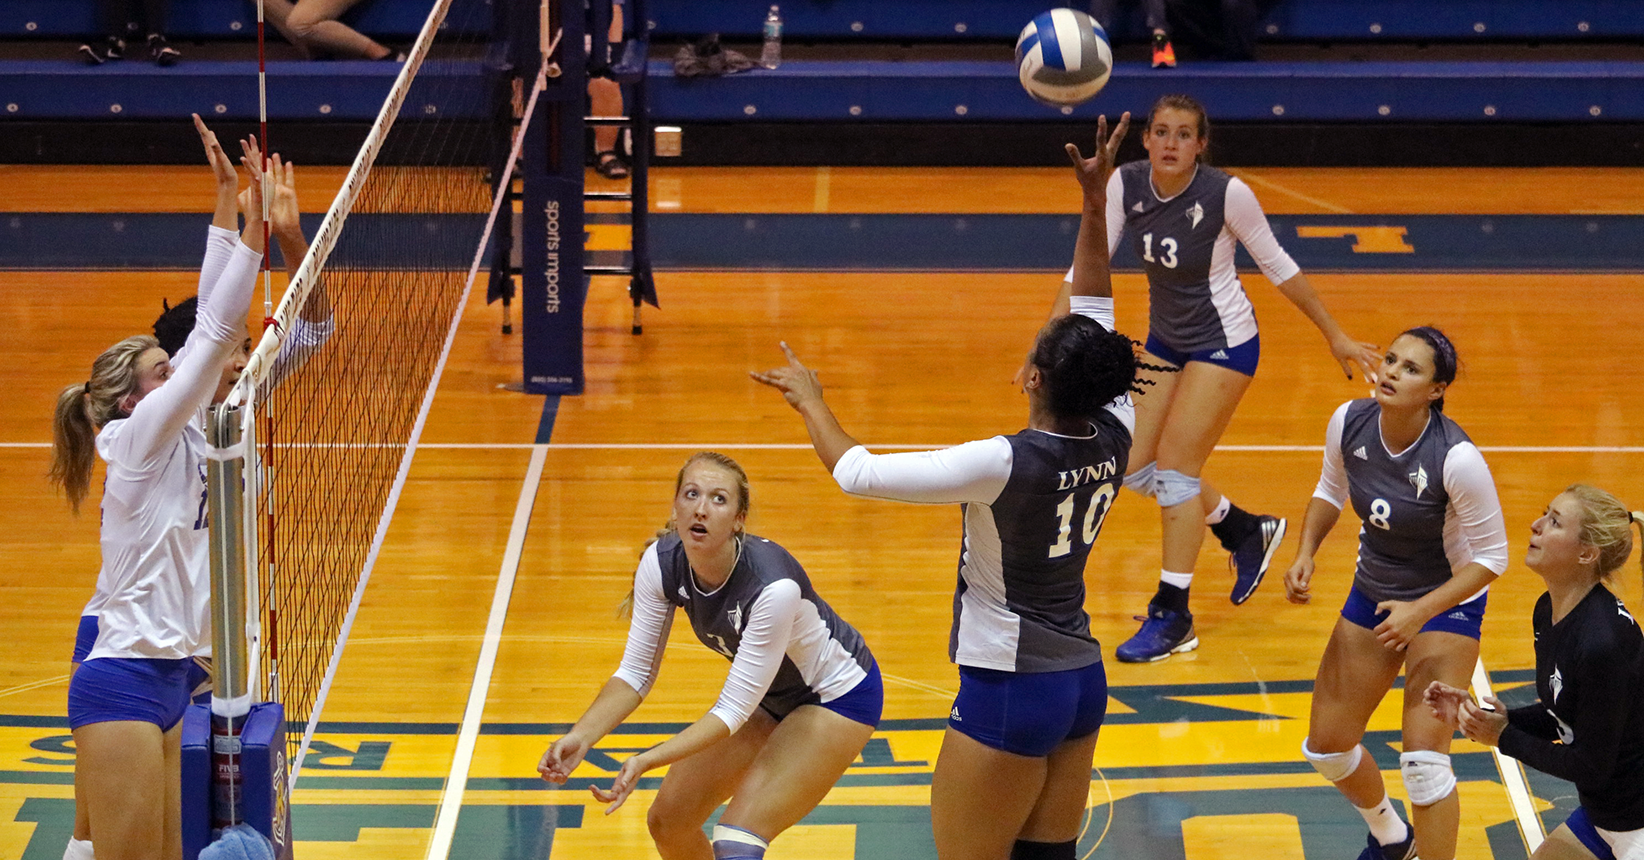 Volleyball Sinks Rollins, Ties Record for SSC Wins in a Season